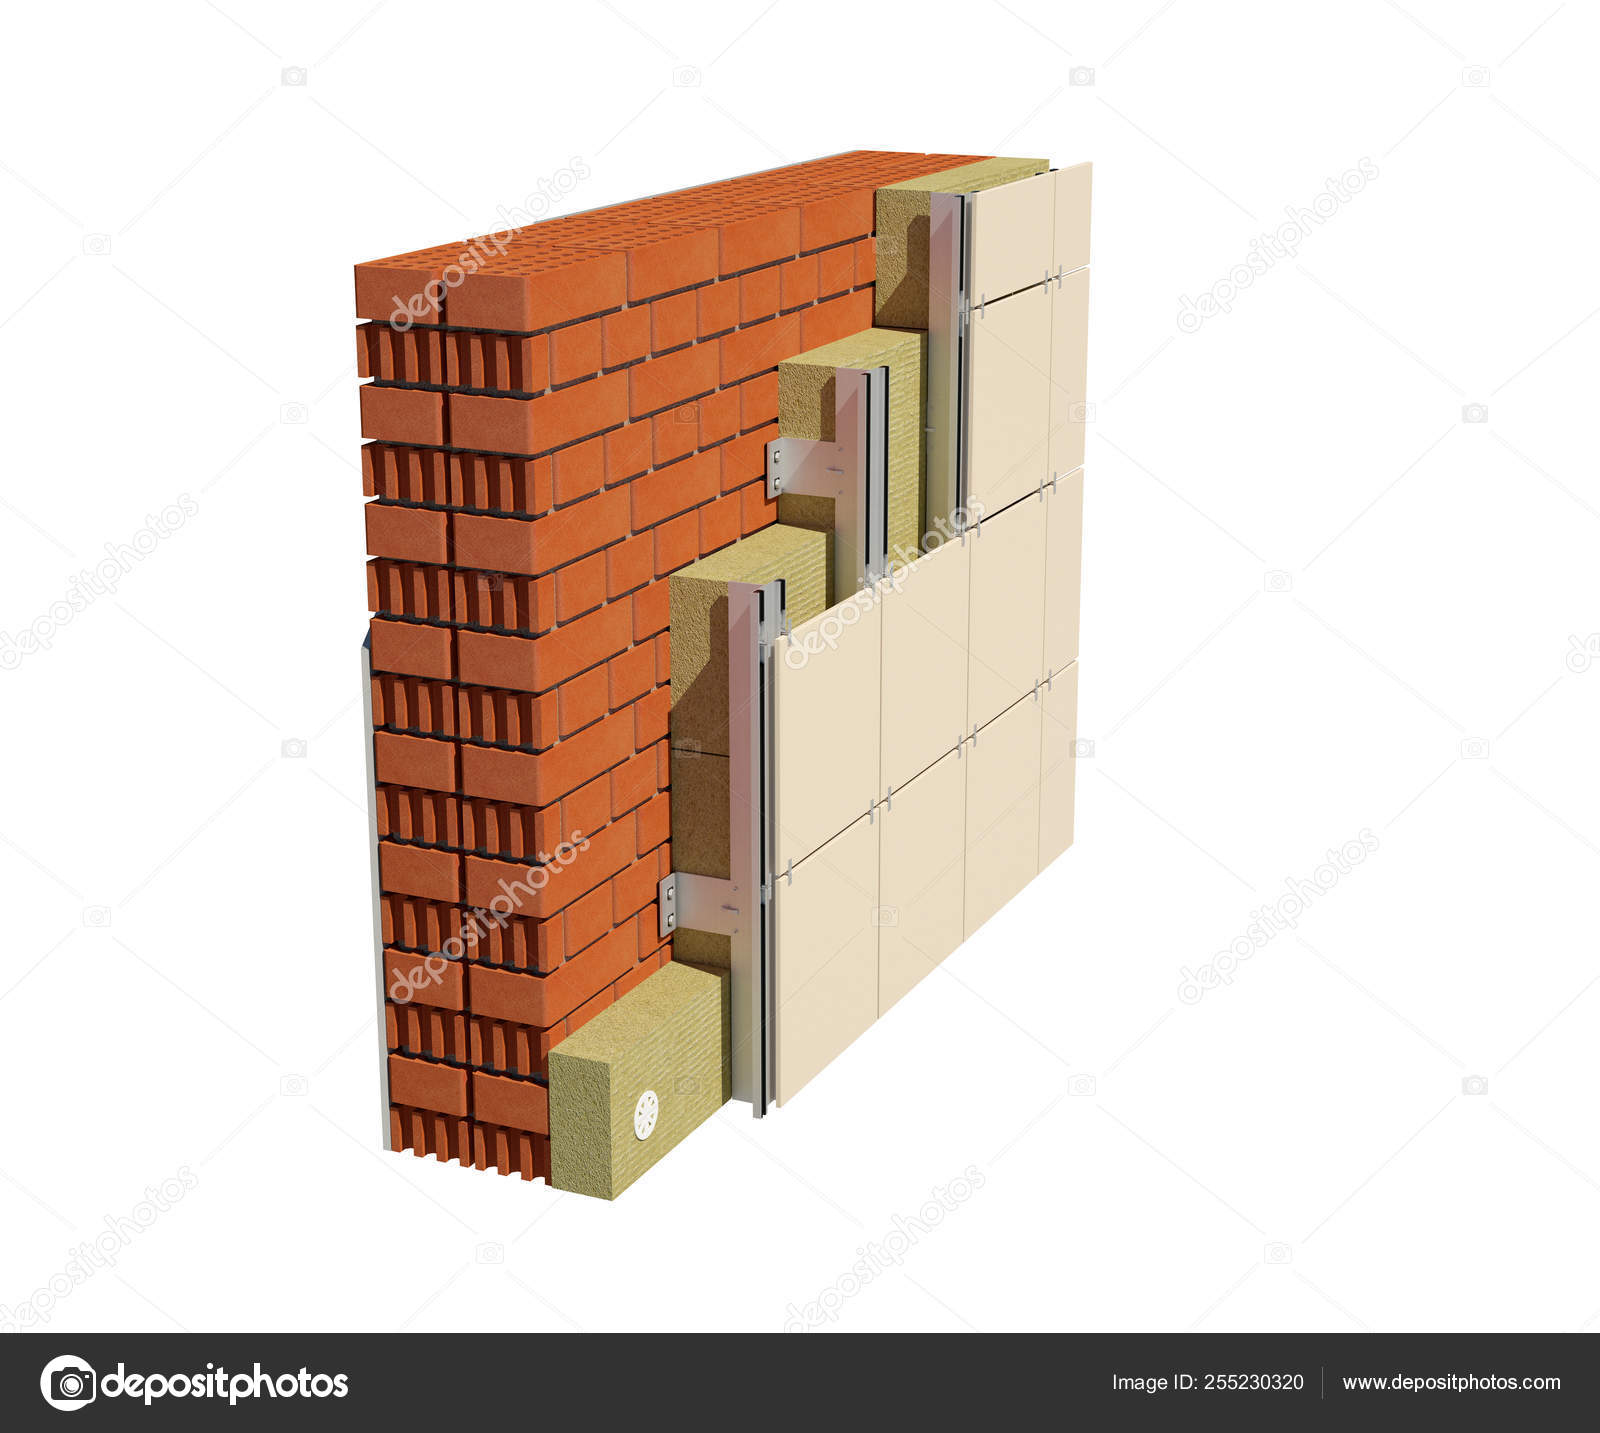 Render Image Insulated House Wall Ventilated Facade Detailed